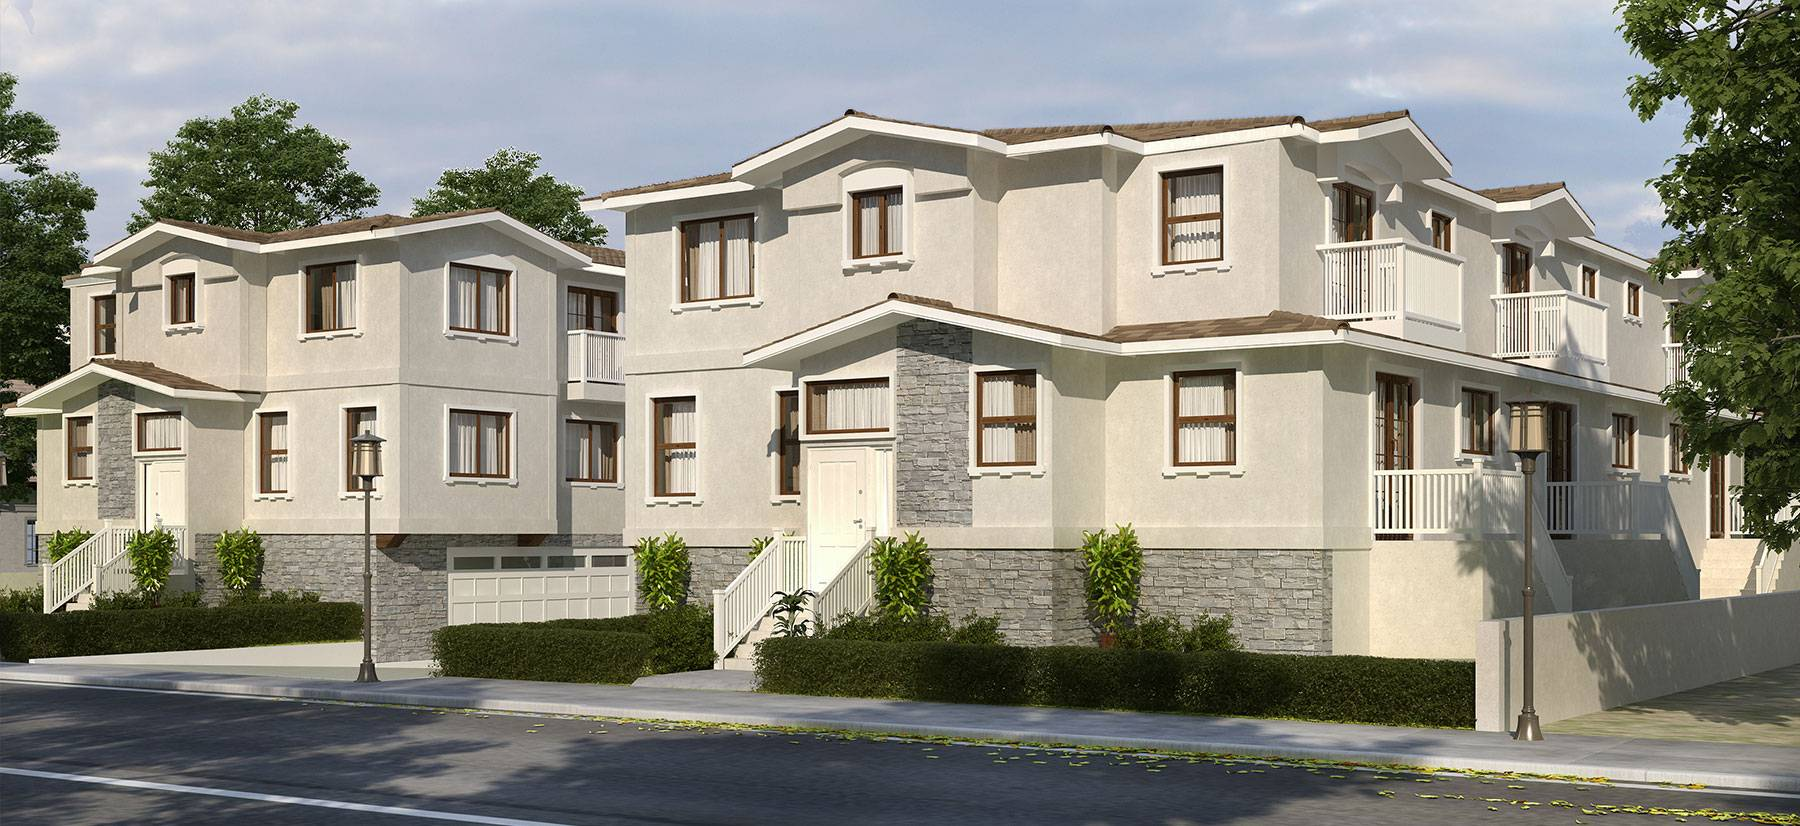 sample multi-family housing project by the City government of Fresno